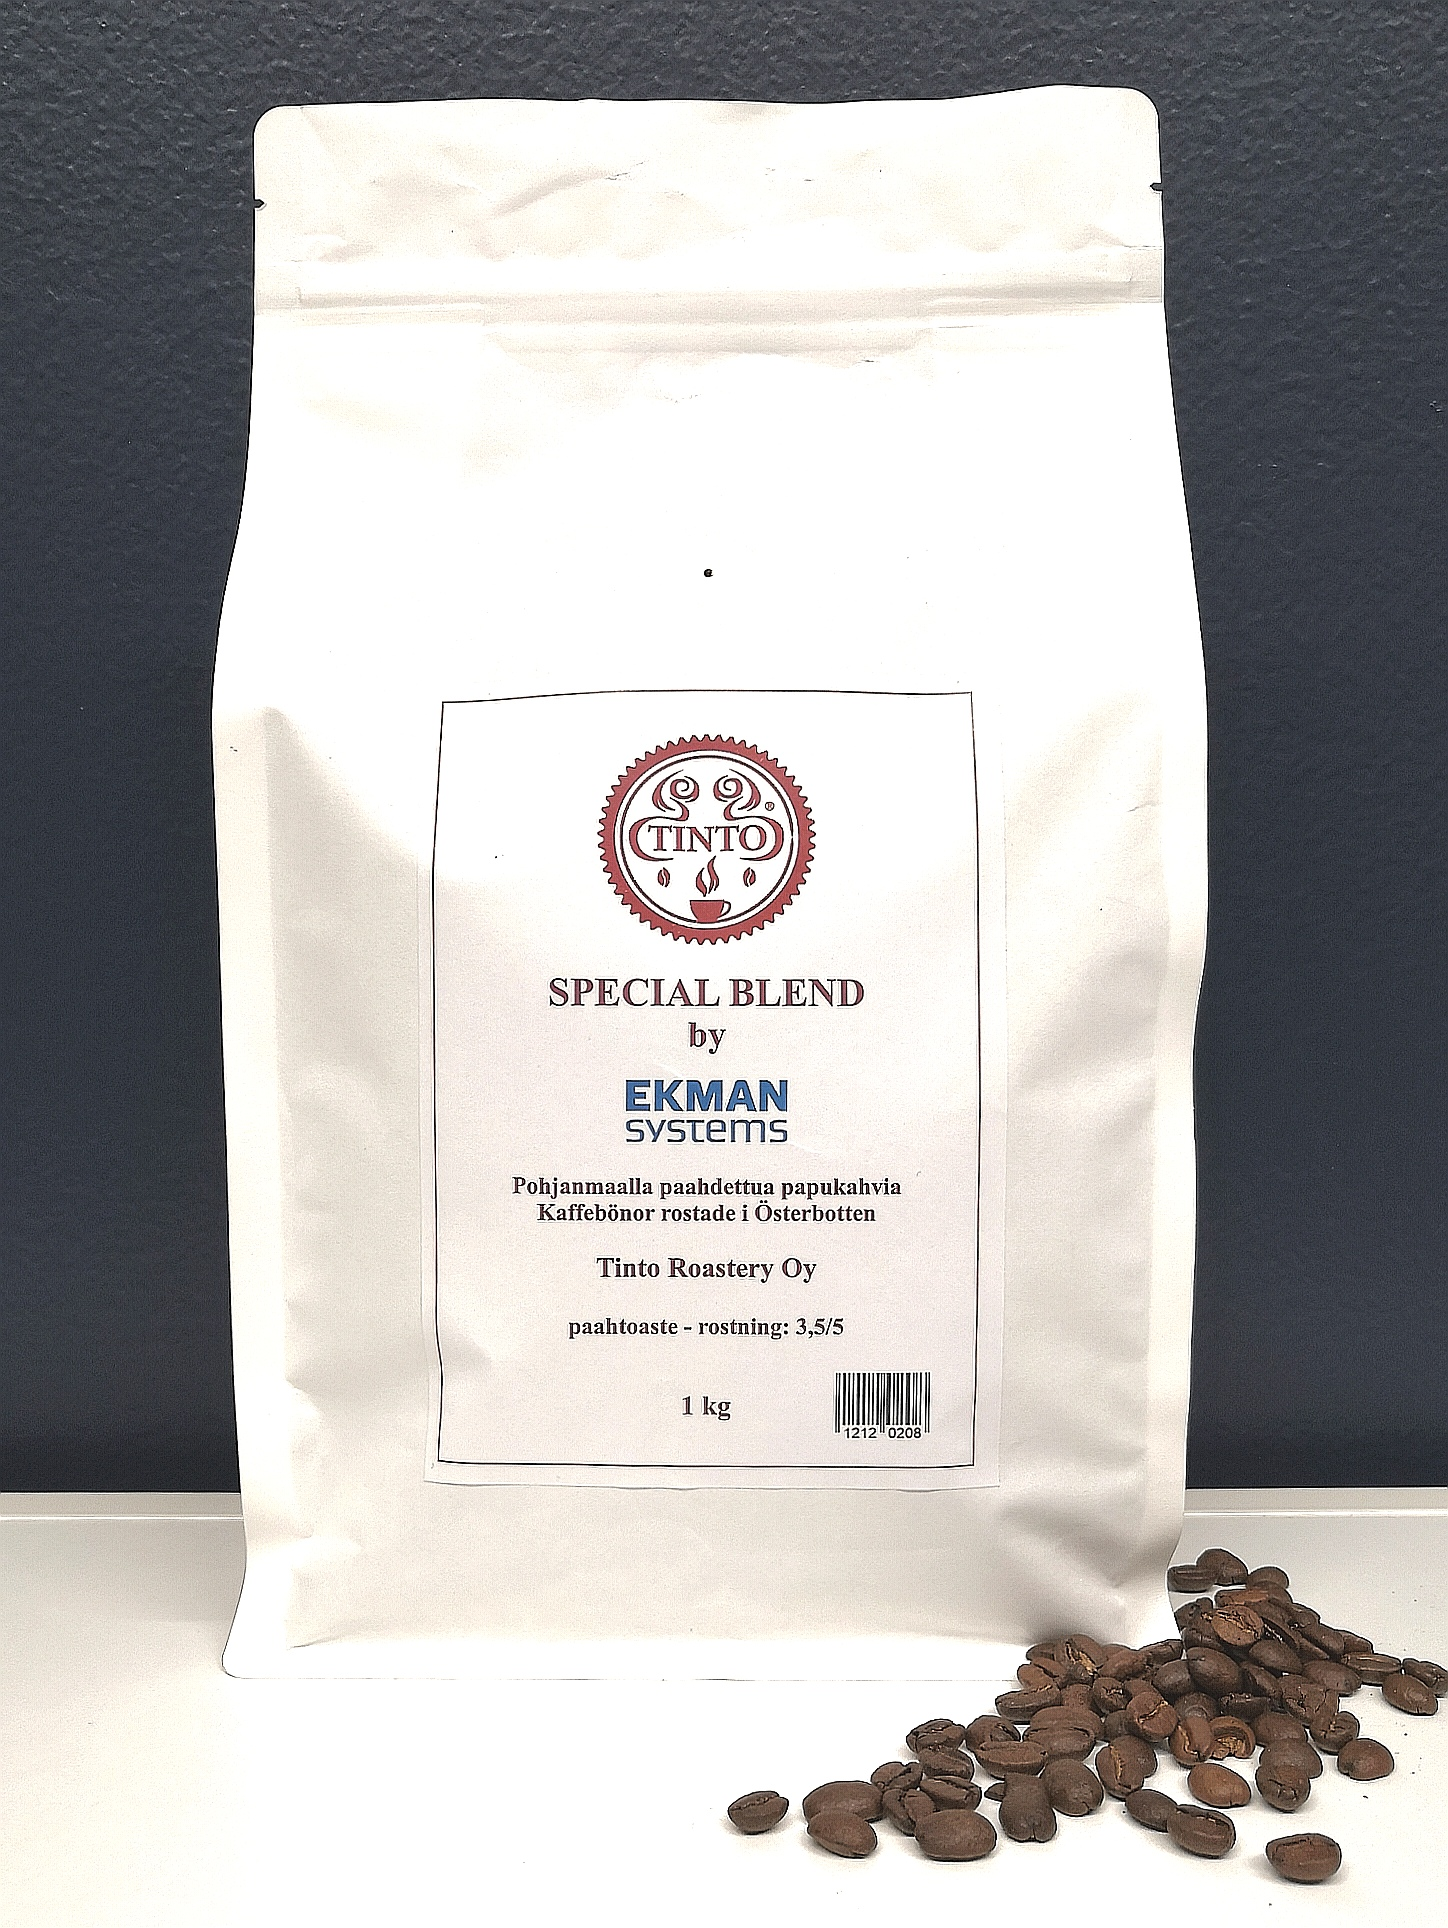 Tinto papu Special Blend by Ekman Systems 1kg/pss, 3kg/ltk